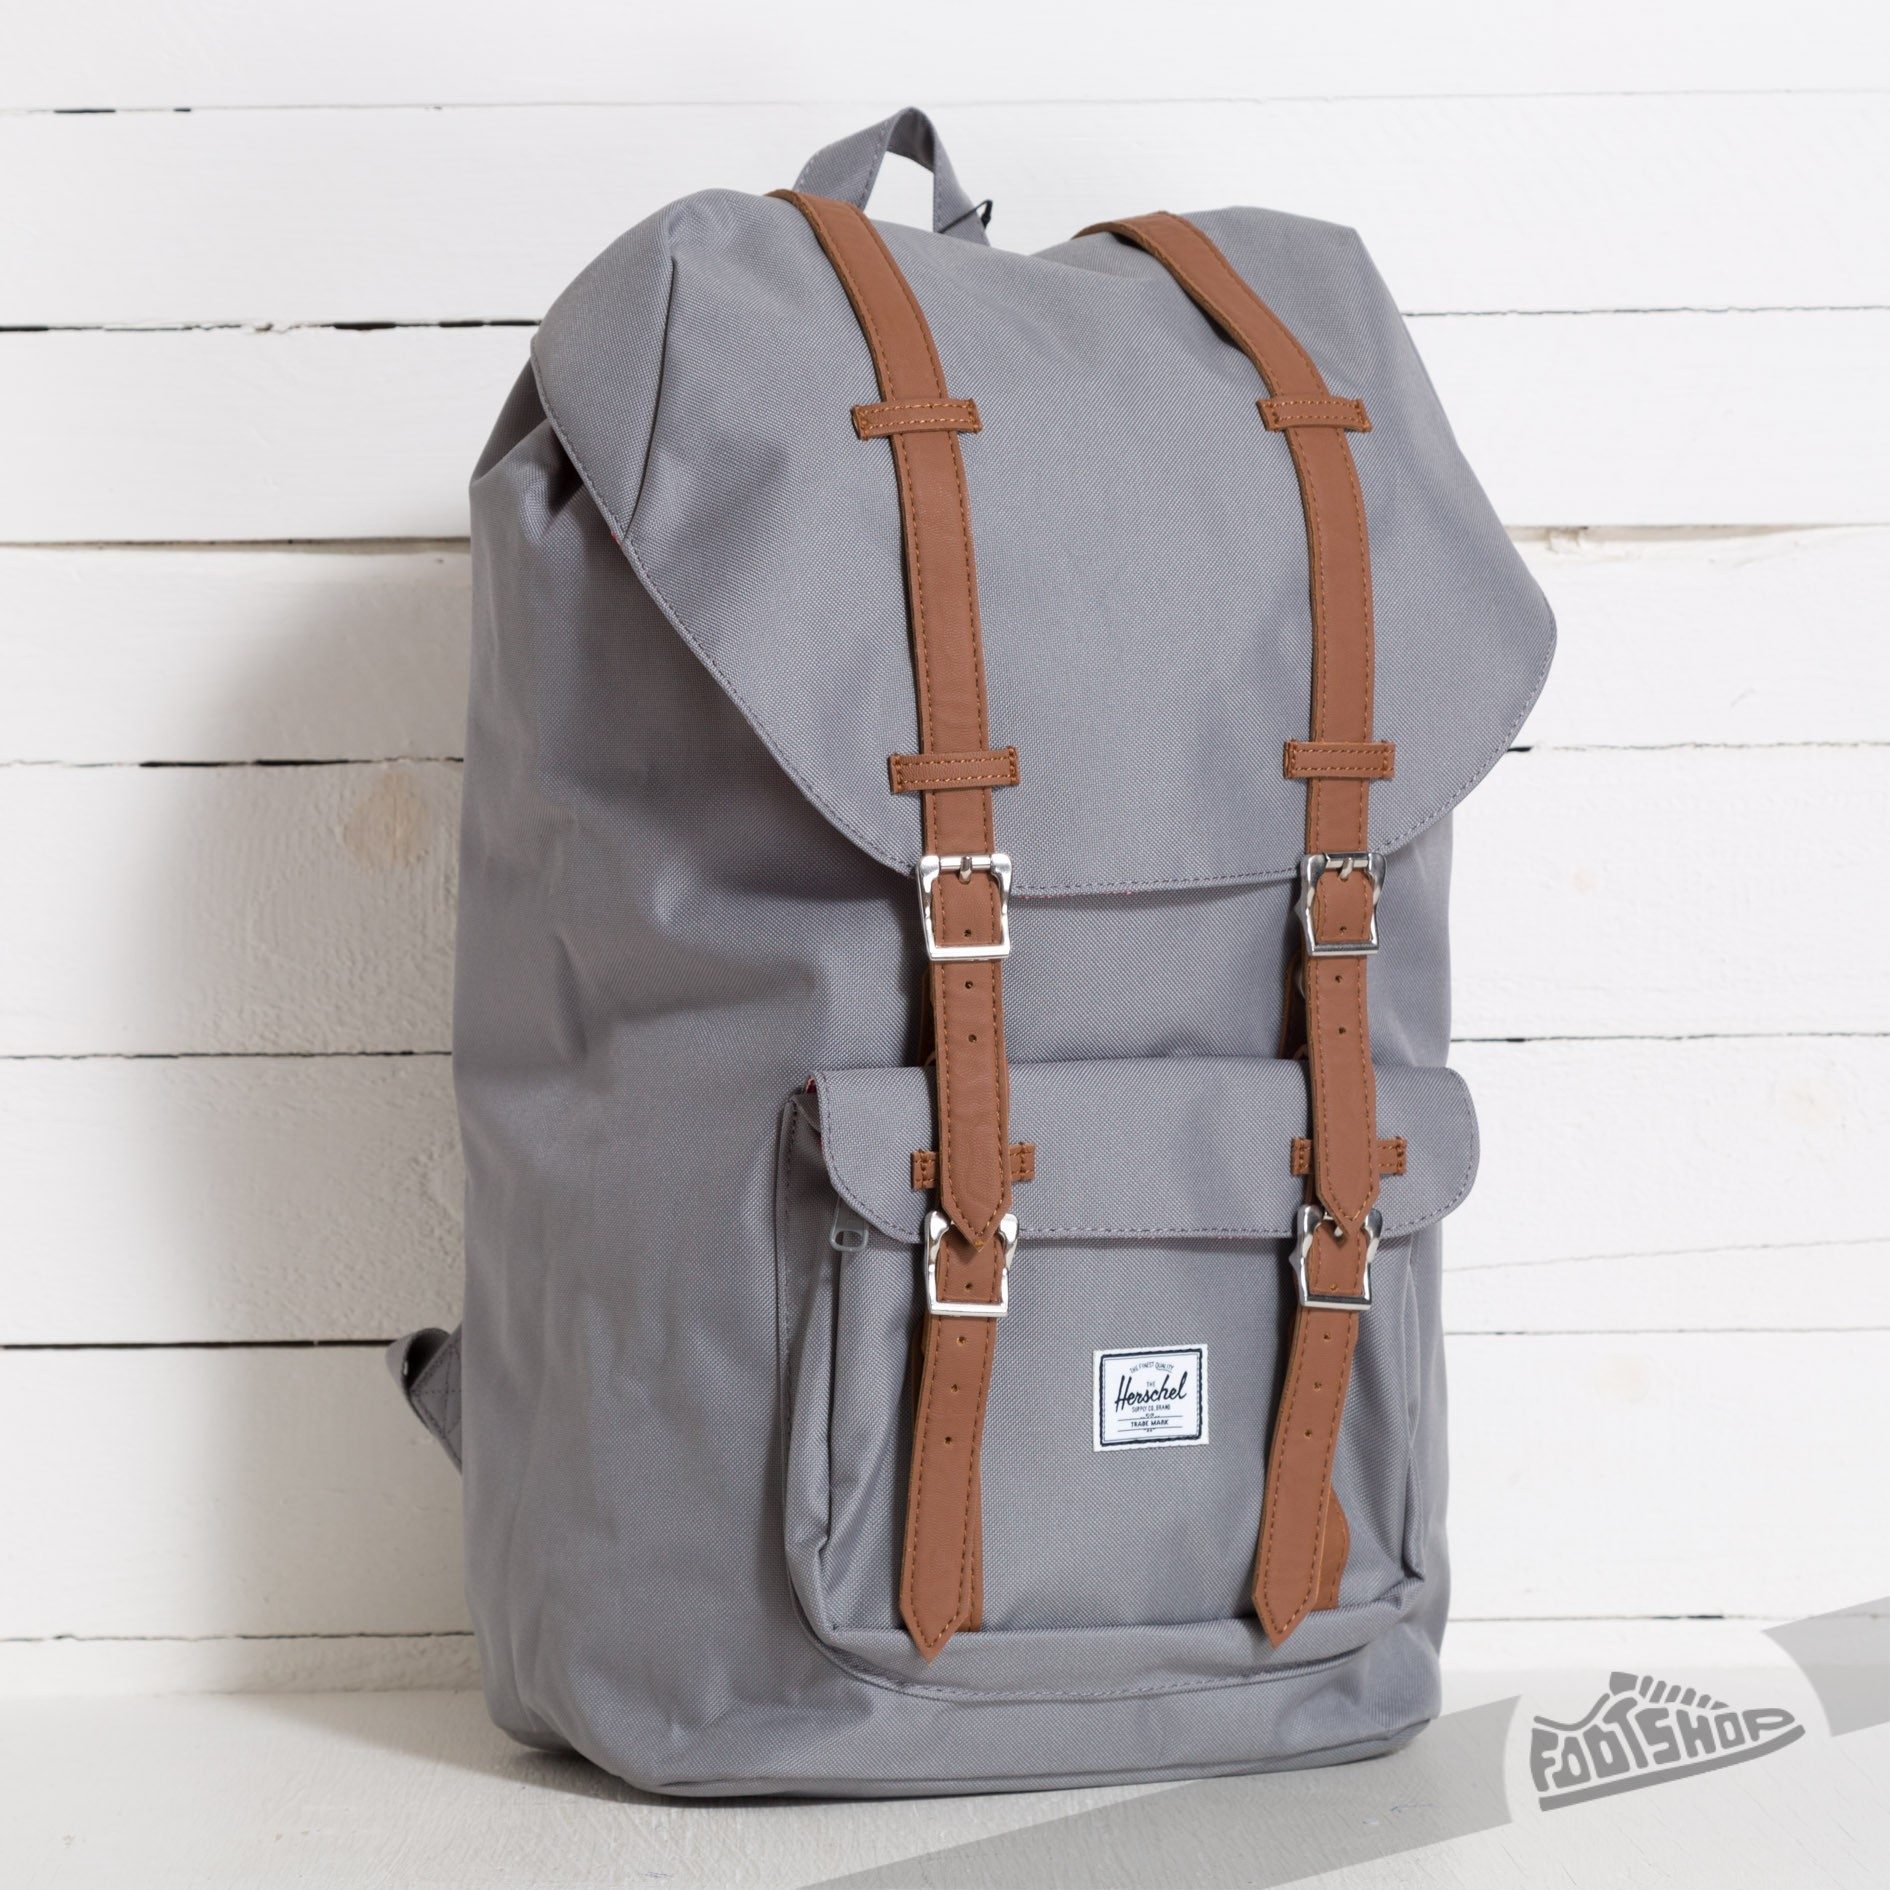 Herschel Supply Co. Little America Backpack Grey/Tan - 6974